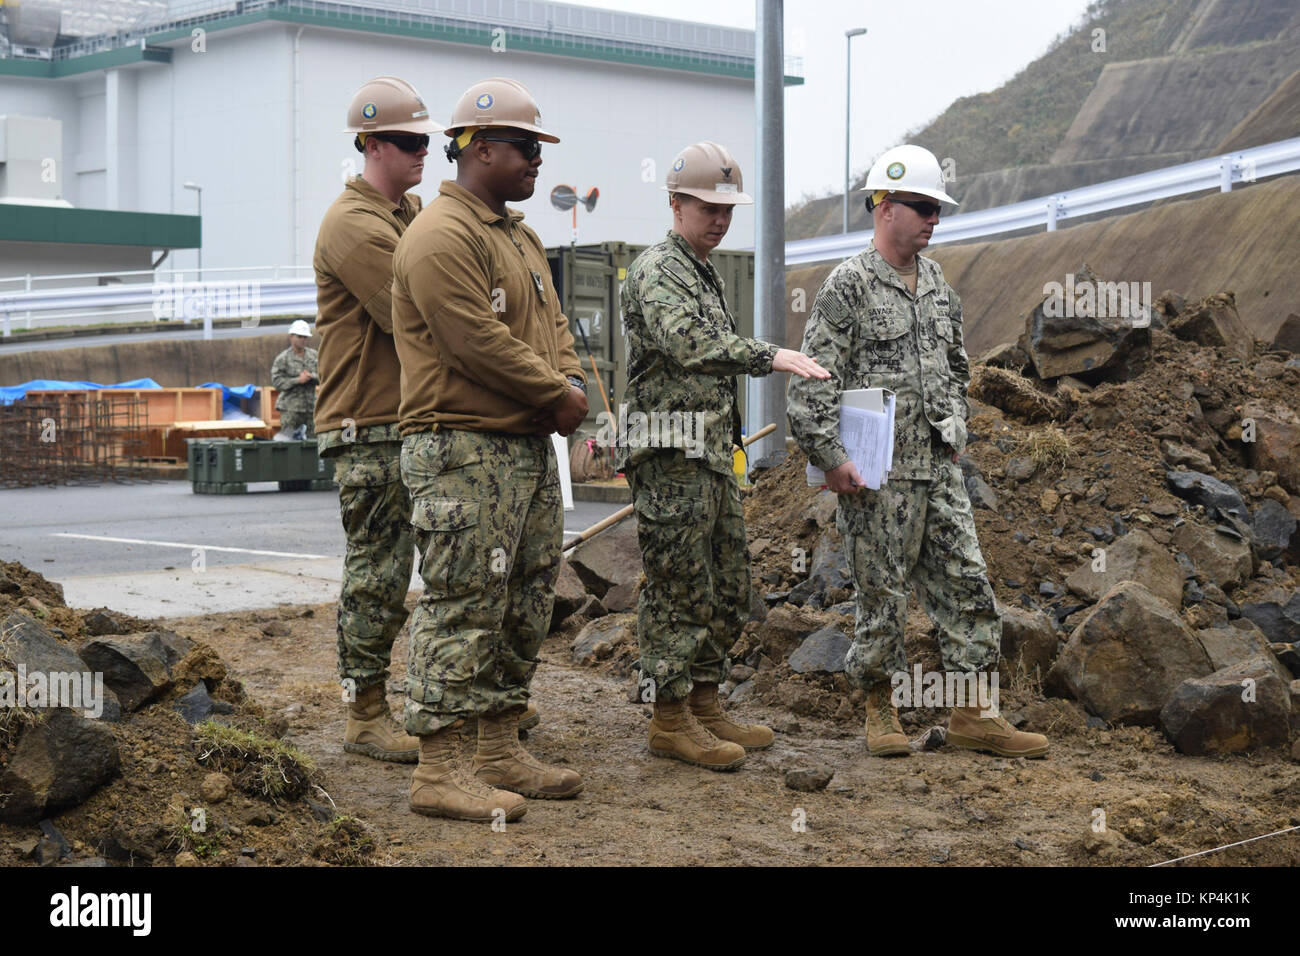 SASEBO, Japan (Dec. 6, 2017) Seabees from 30th Naval Construction Regiment visits Naval Mobile Construction Battalion - Stock Image